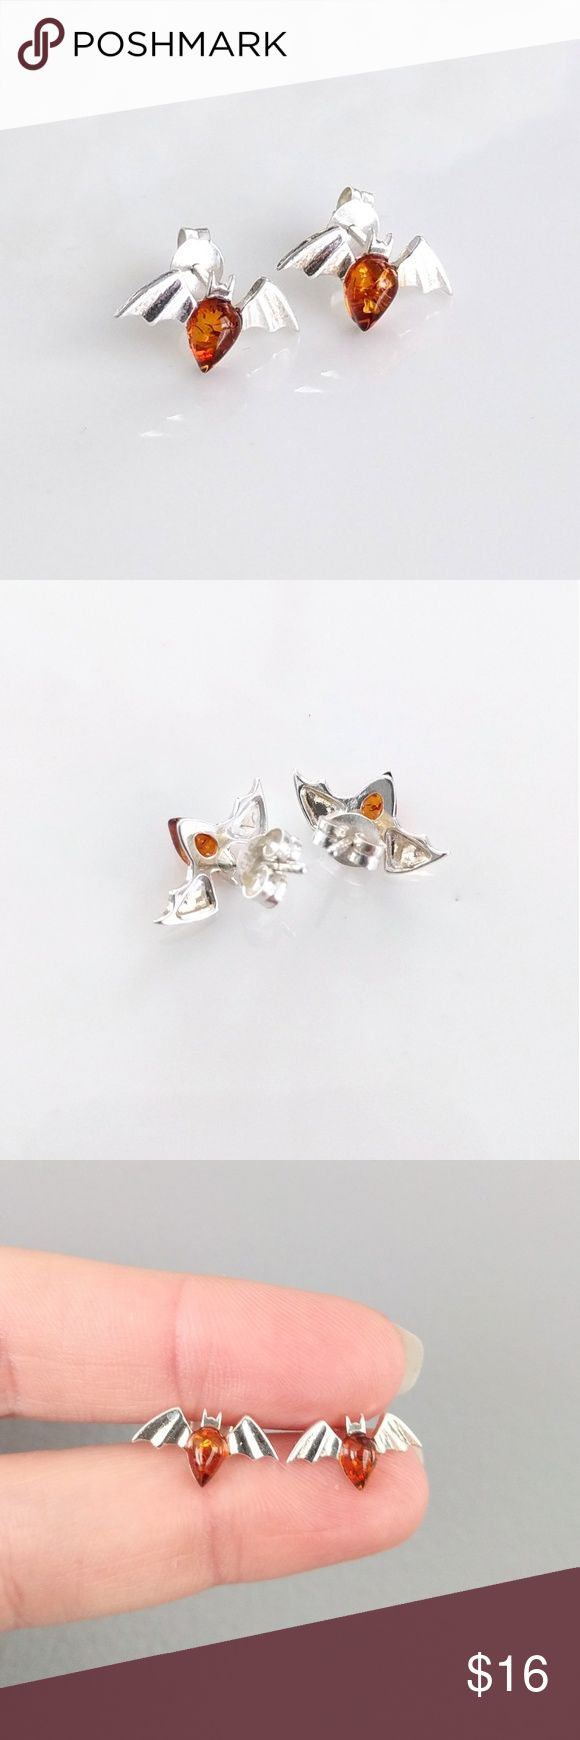 Sterling Silver Baltic Amber Bat Stud Earrings An Unused Piece From My  Personal Collection